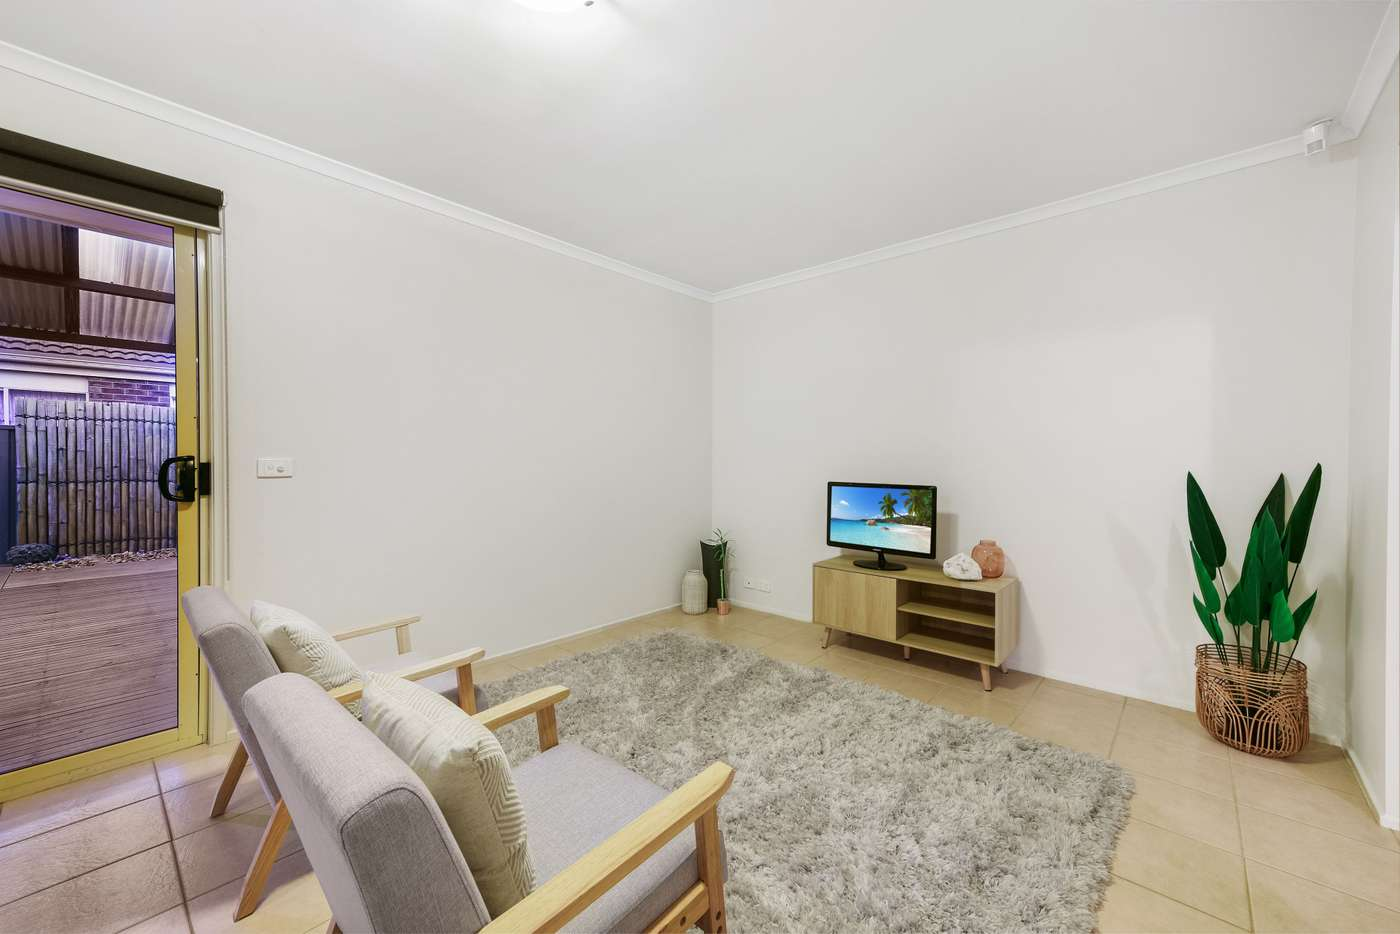 Sixth view of Homely house listing, 53 Heysen Parkway, Caroline Springs VIC 3023